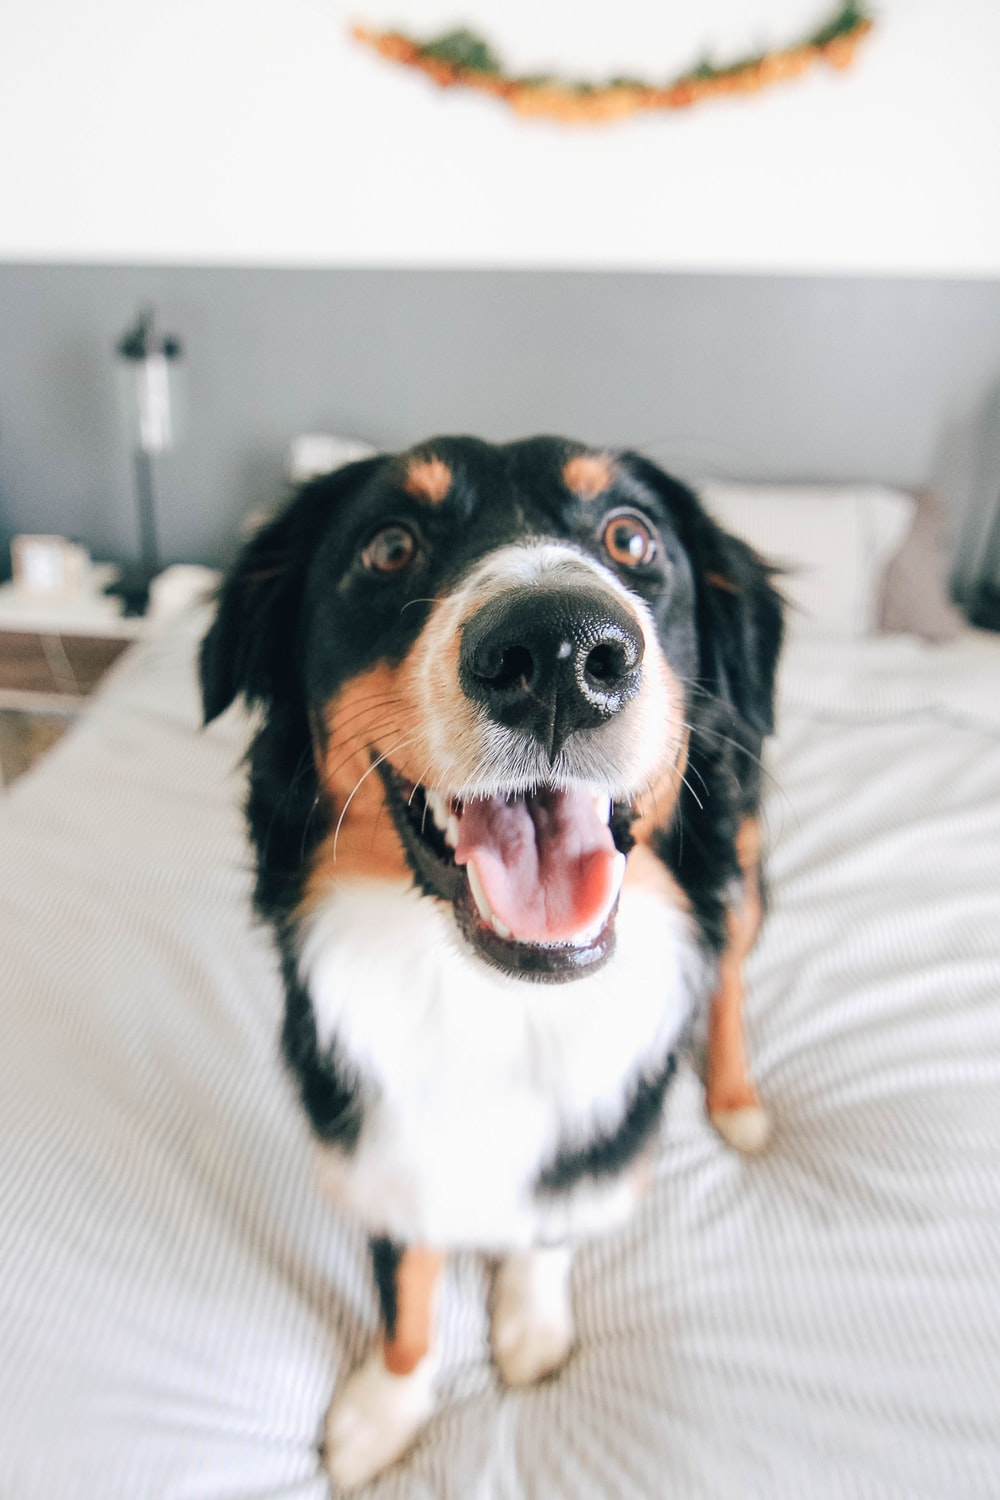 short-coated tricolor dog standing on bed